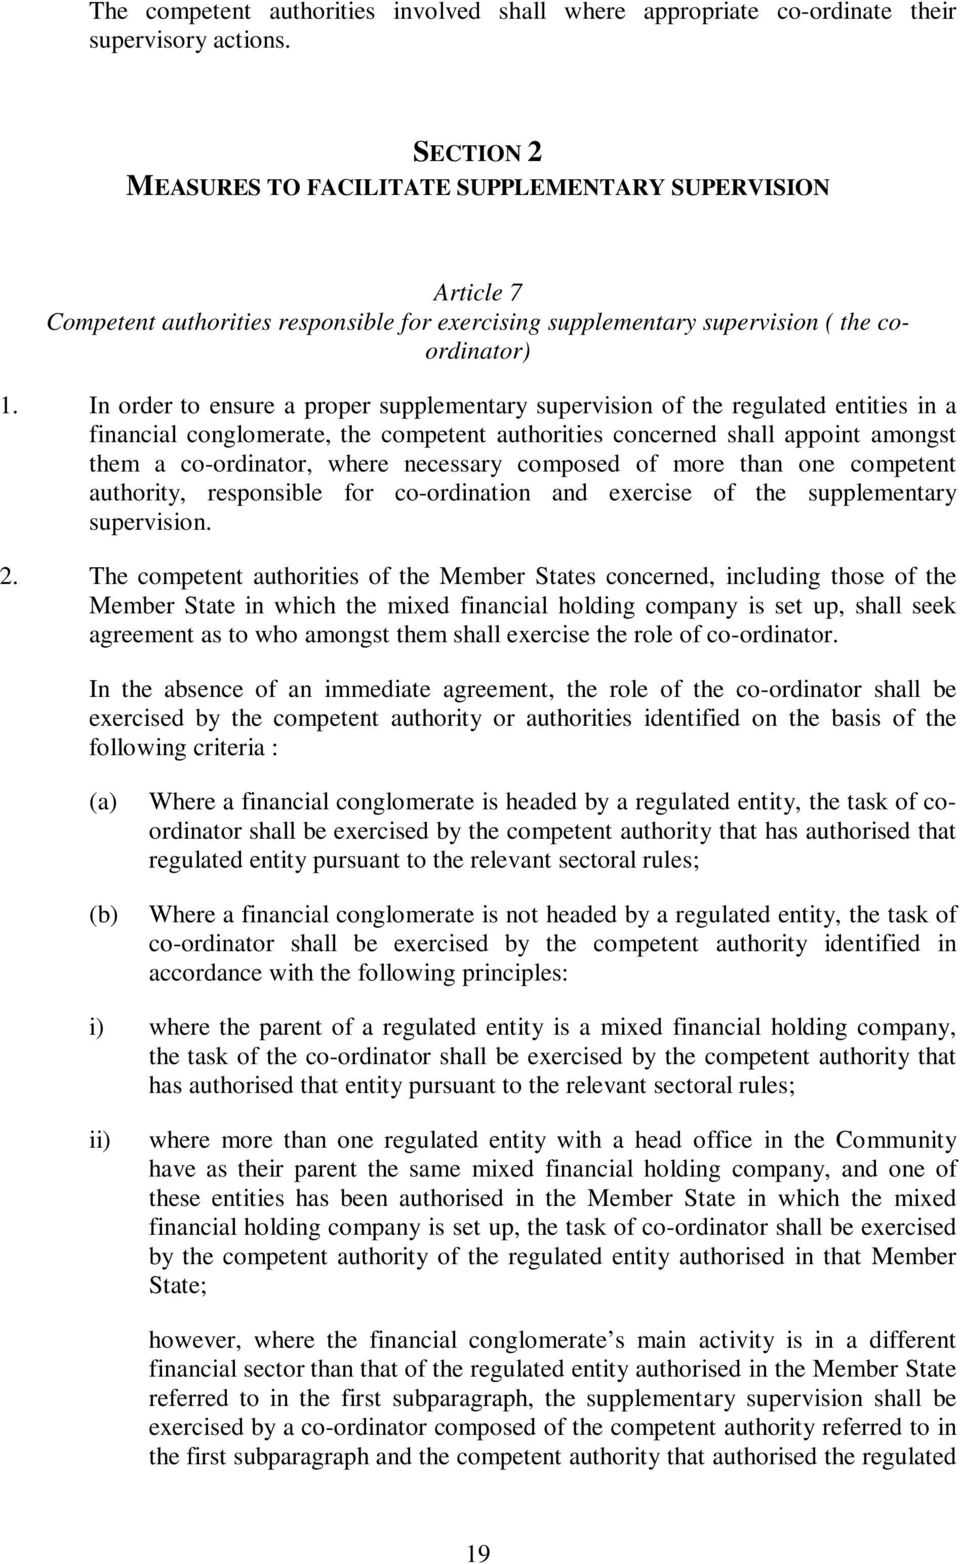 In order to ensure a proper supplementary supervision of the regulated entities in a financial conglomerate, the competent authorities concerned shall appoint amongst them a co-ordinator, where